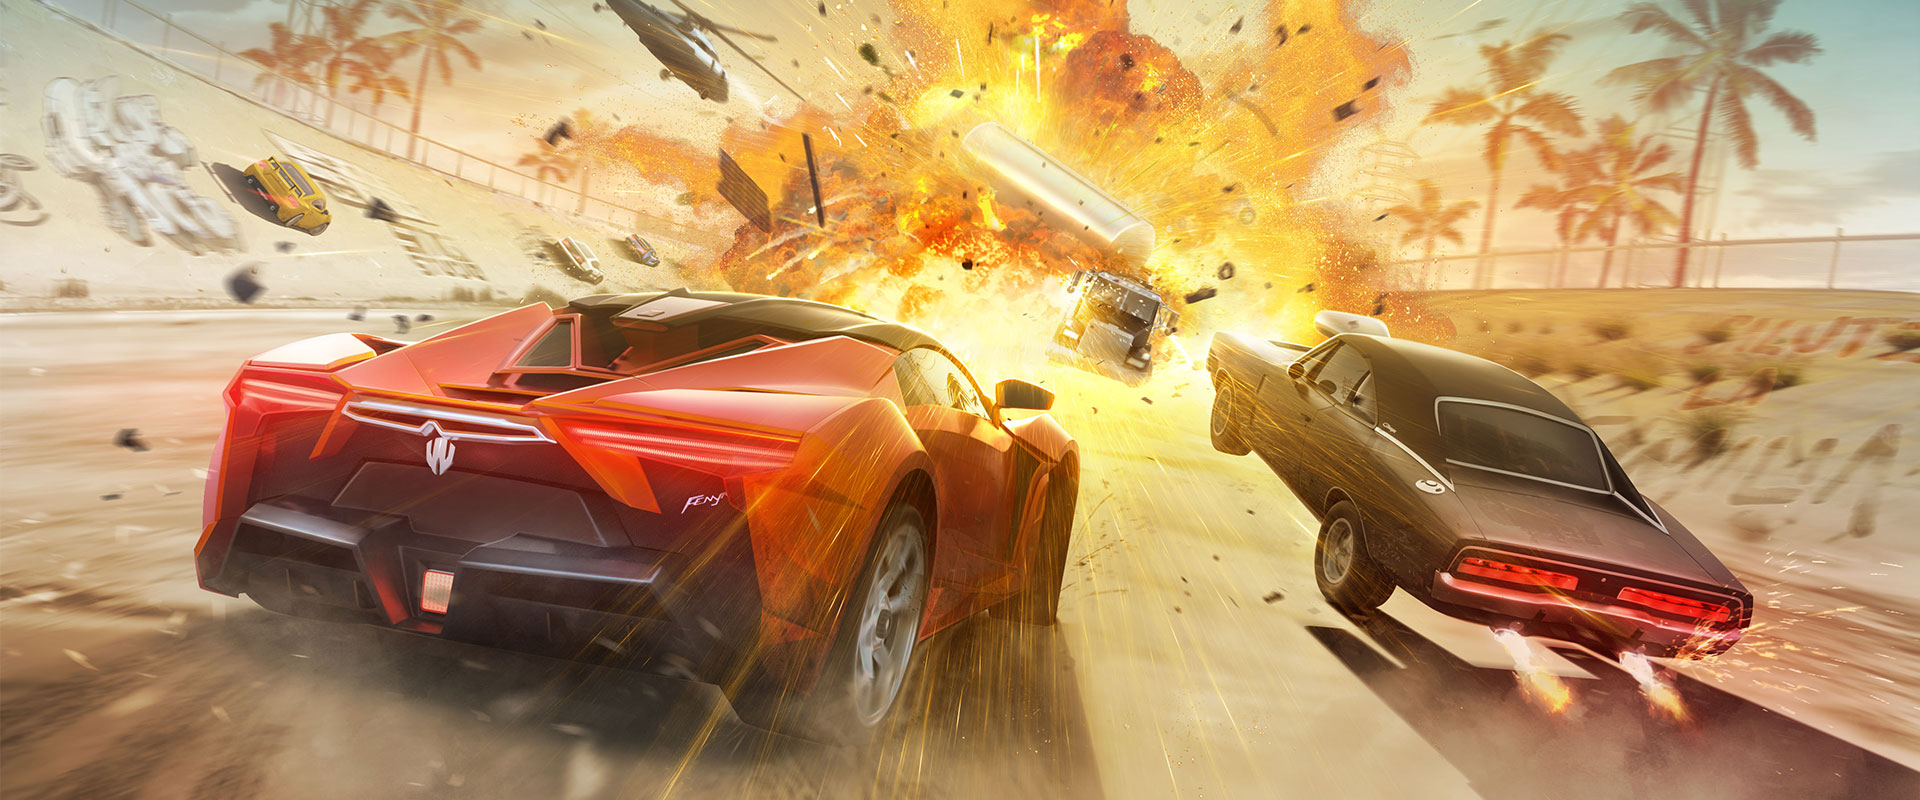 http://www.universalbranddevelopment.com/storage/businesses-games-projects-fastfurioustakedown-banner-5c11b7e02b283.jpg